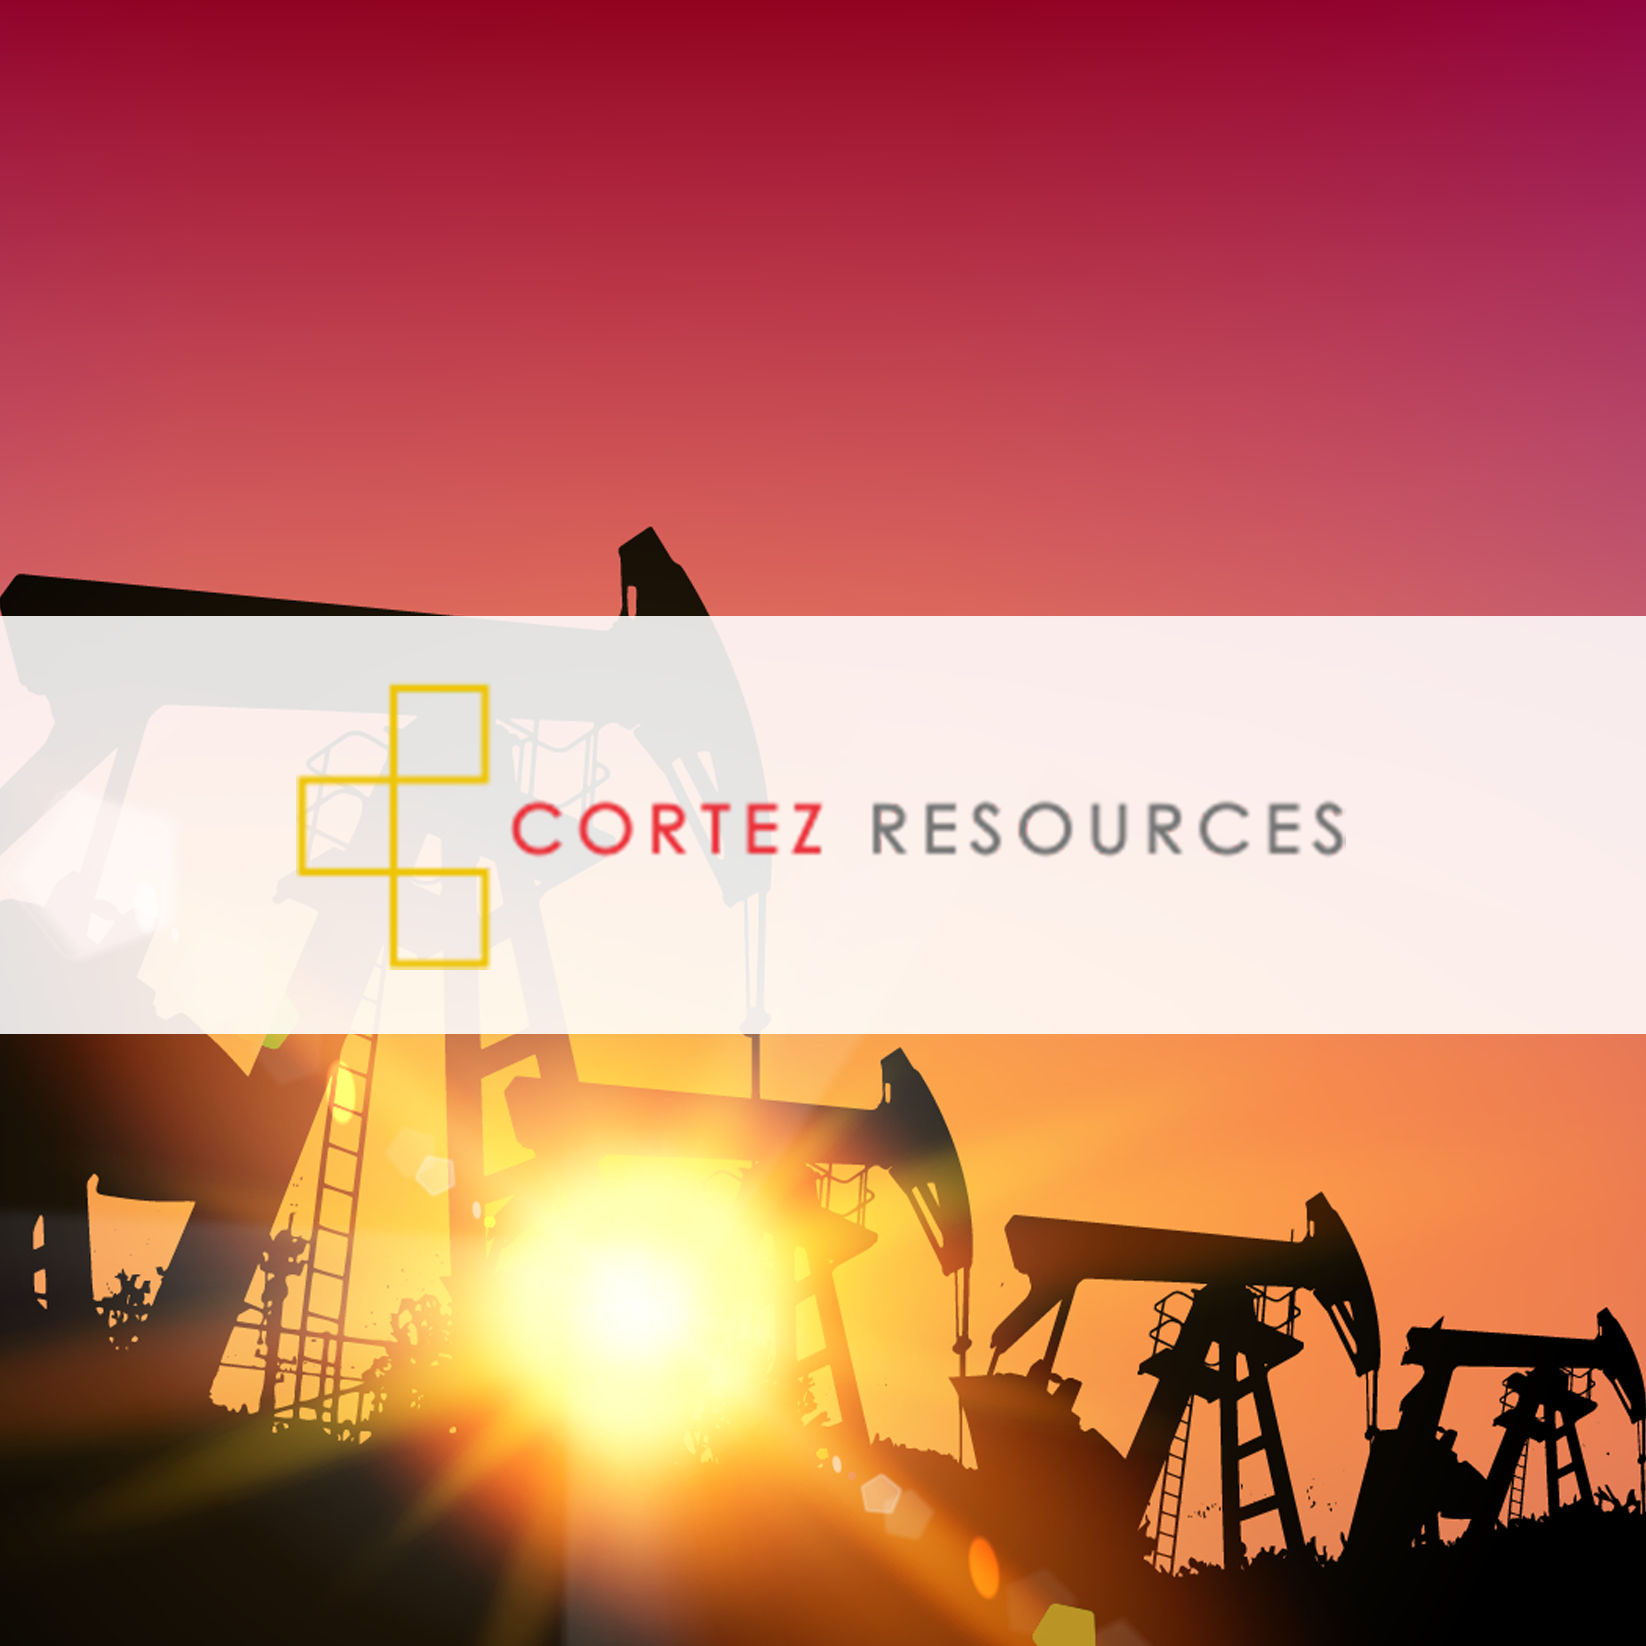 Cortez Resources